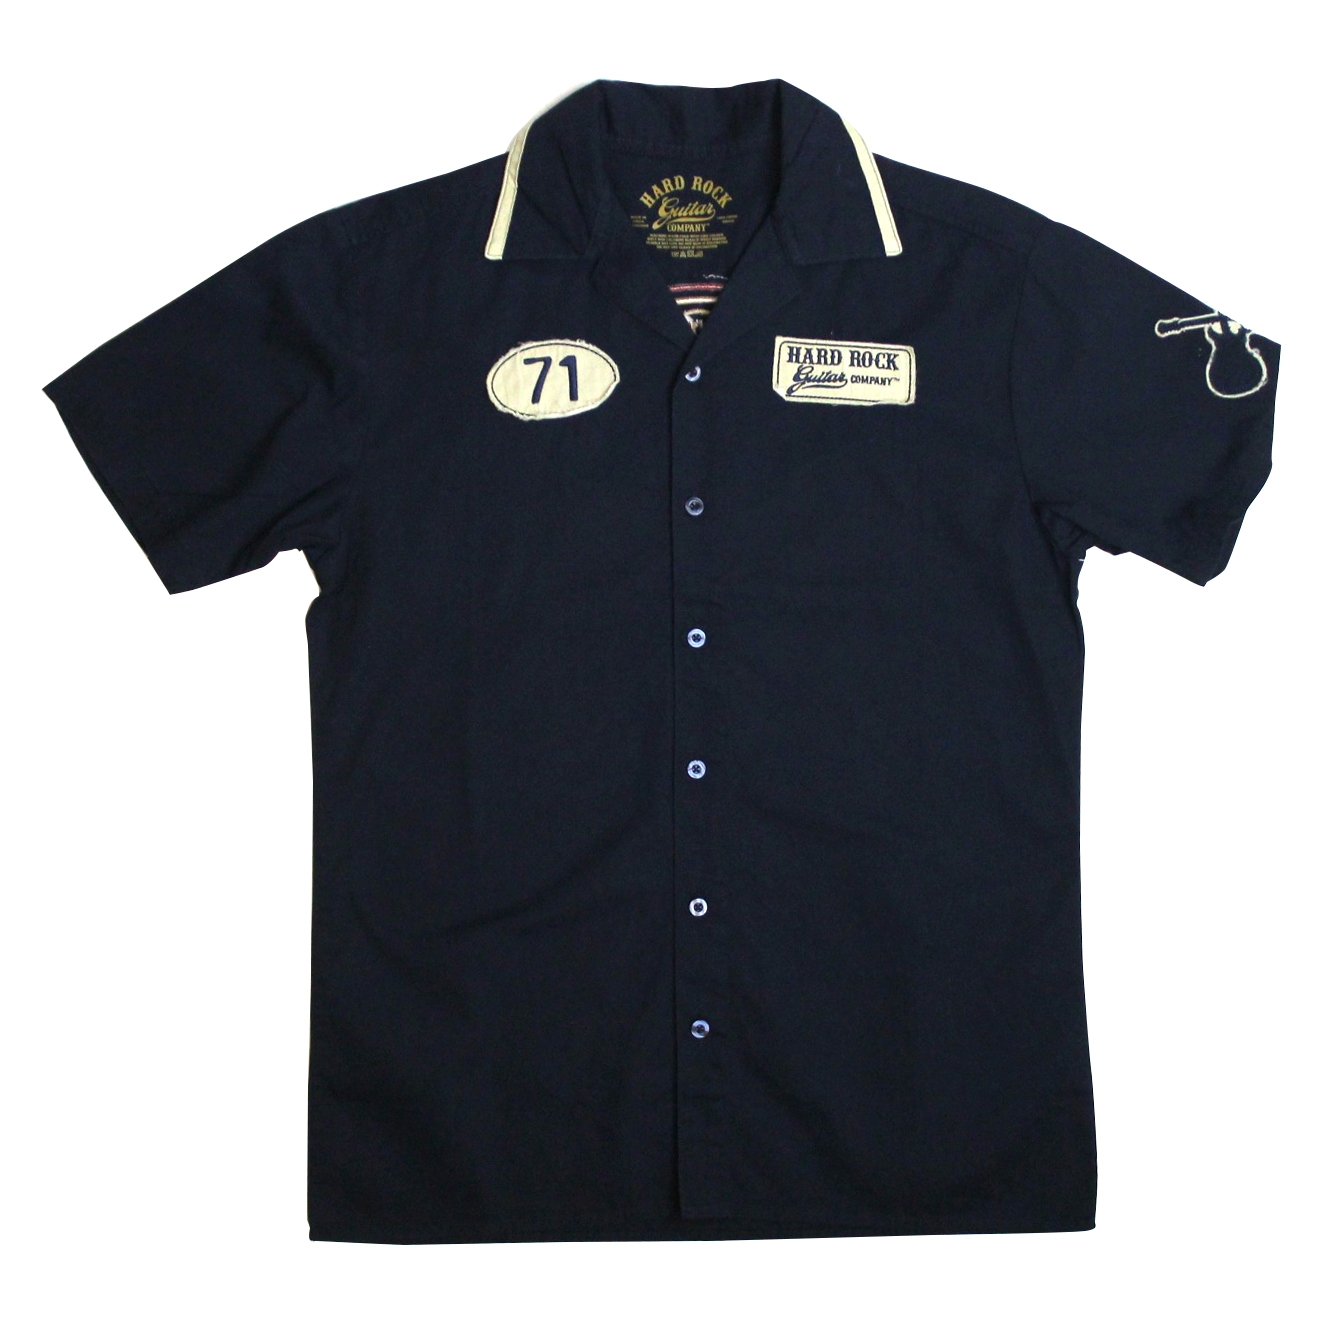 Rock shop guitar company embroidered shirt